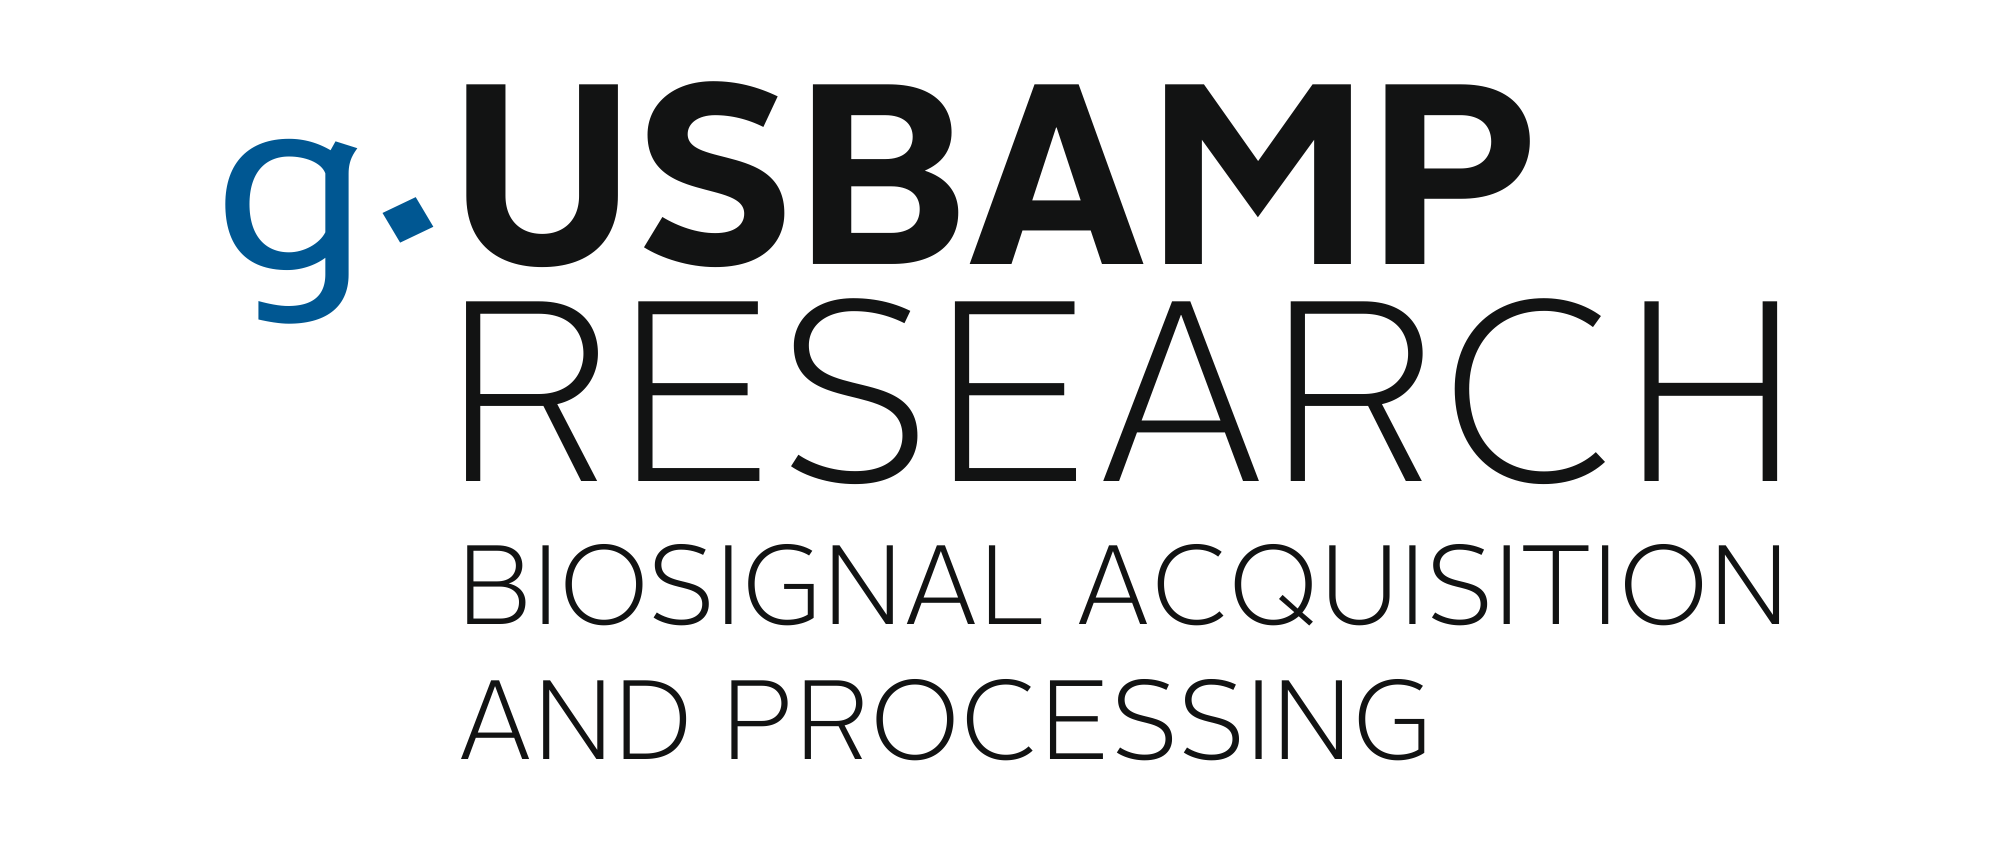 g.USBAMP RESEARCH